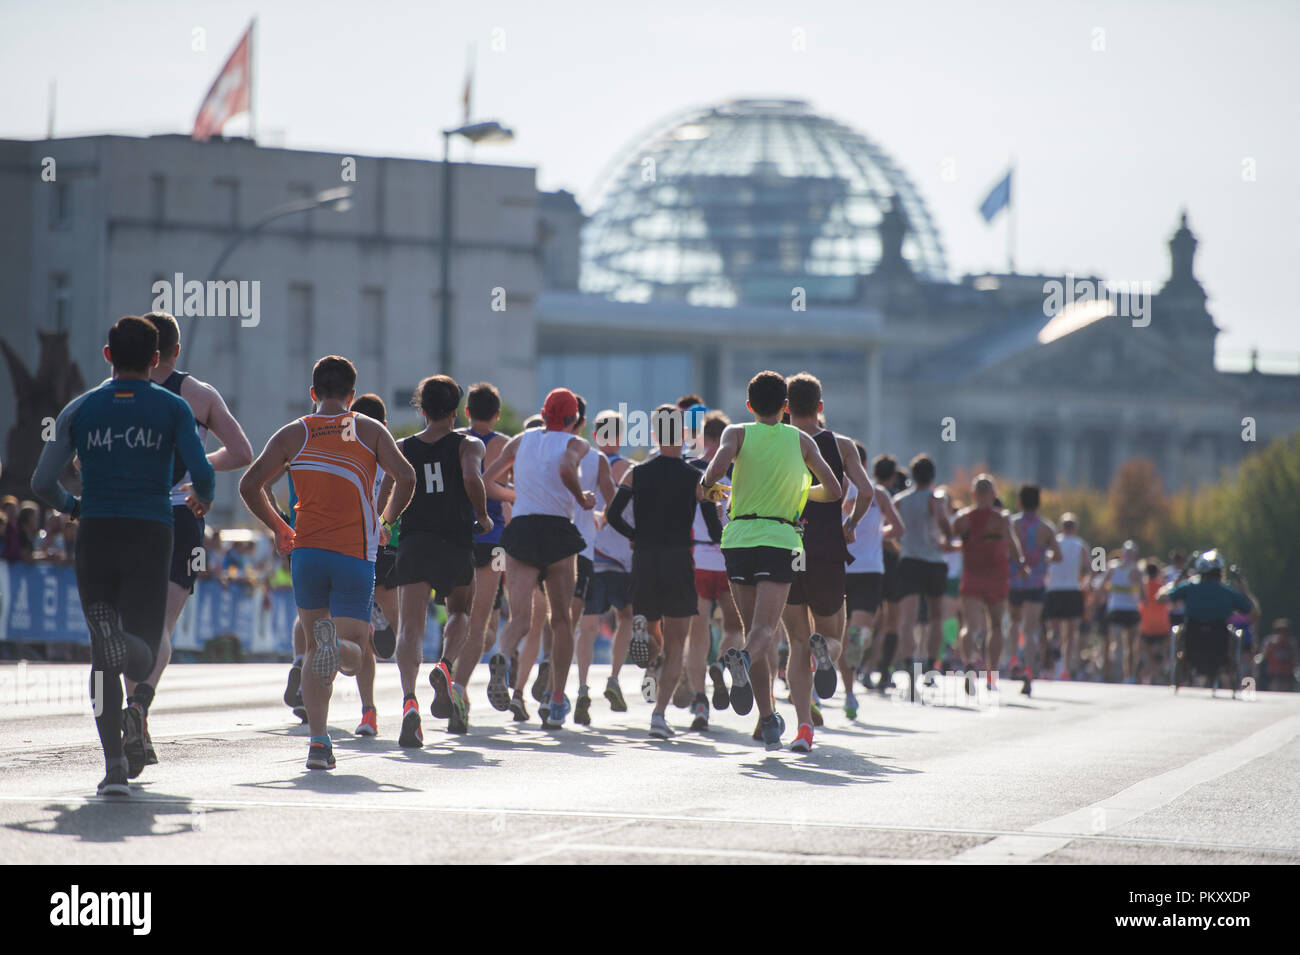 Berlin, Germany. 16th September 2018. Thousands of athletes walk past the Reichstag building at the 45th BMW Berlin Marathon. Photo: Arne Immanuel Bänsch/dpa Credit: dpa picture alliance/Alamy Live News  - Stock Image